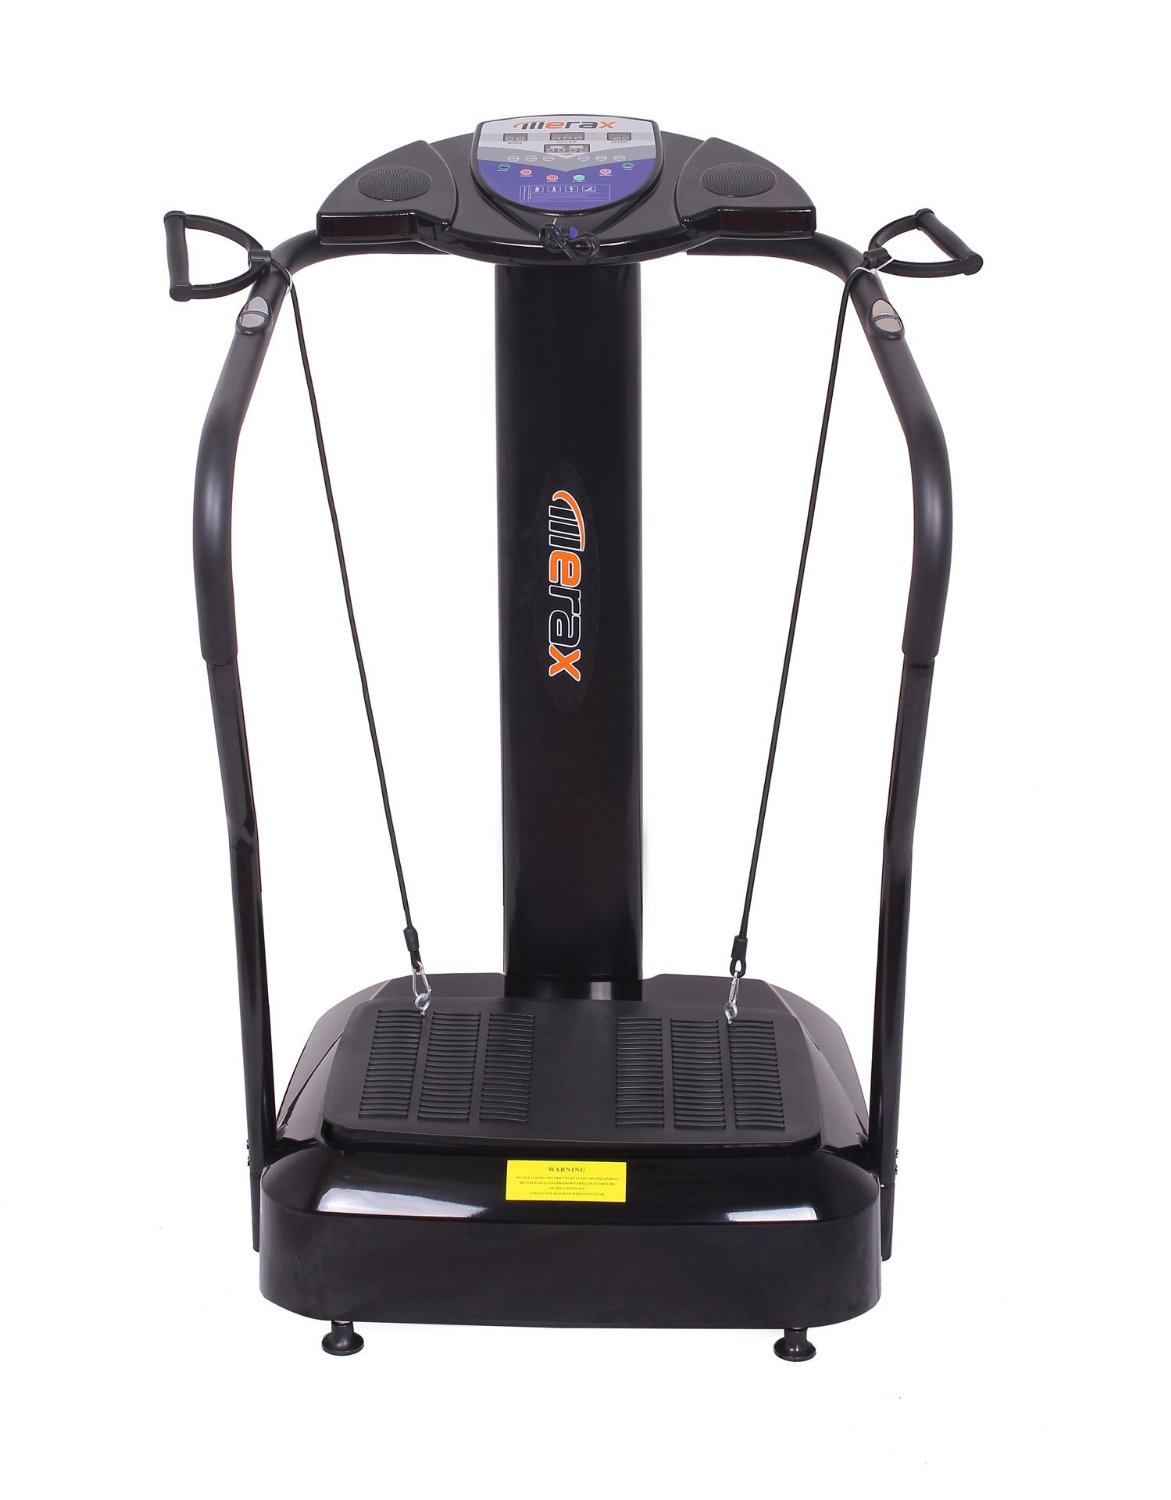 Best Whole Body Vibration Machine Reviews: Top 10 in 2019